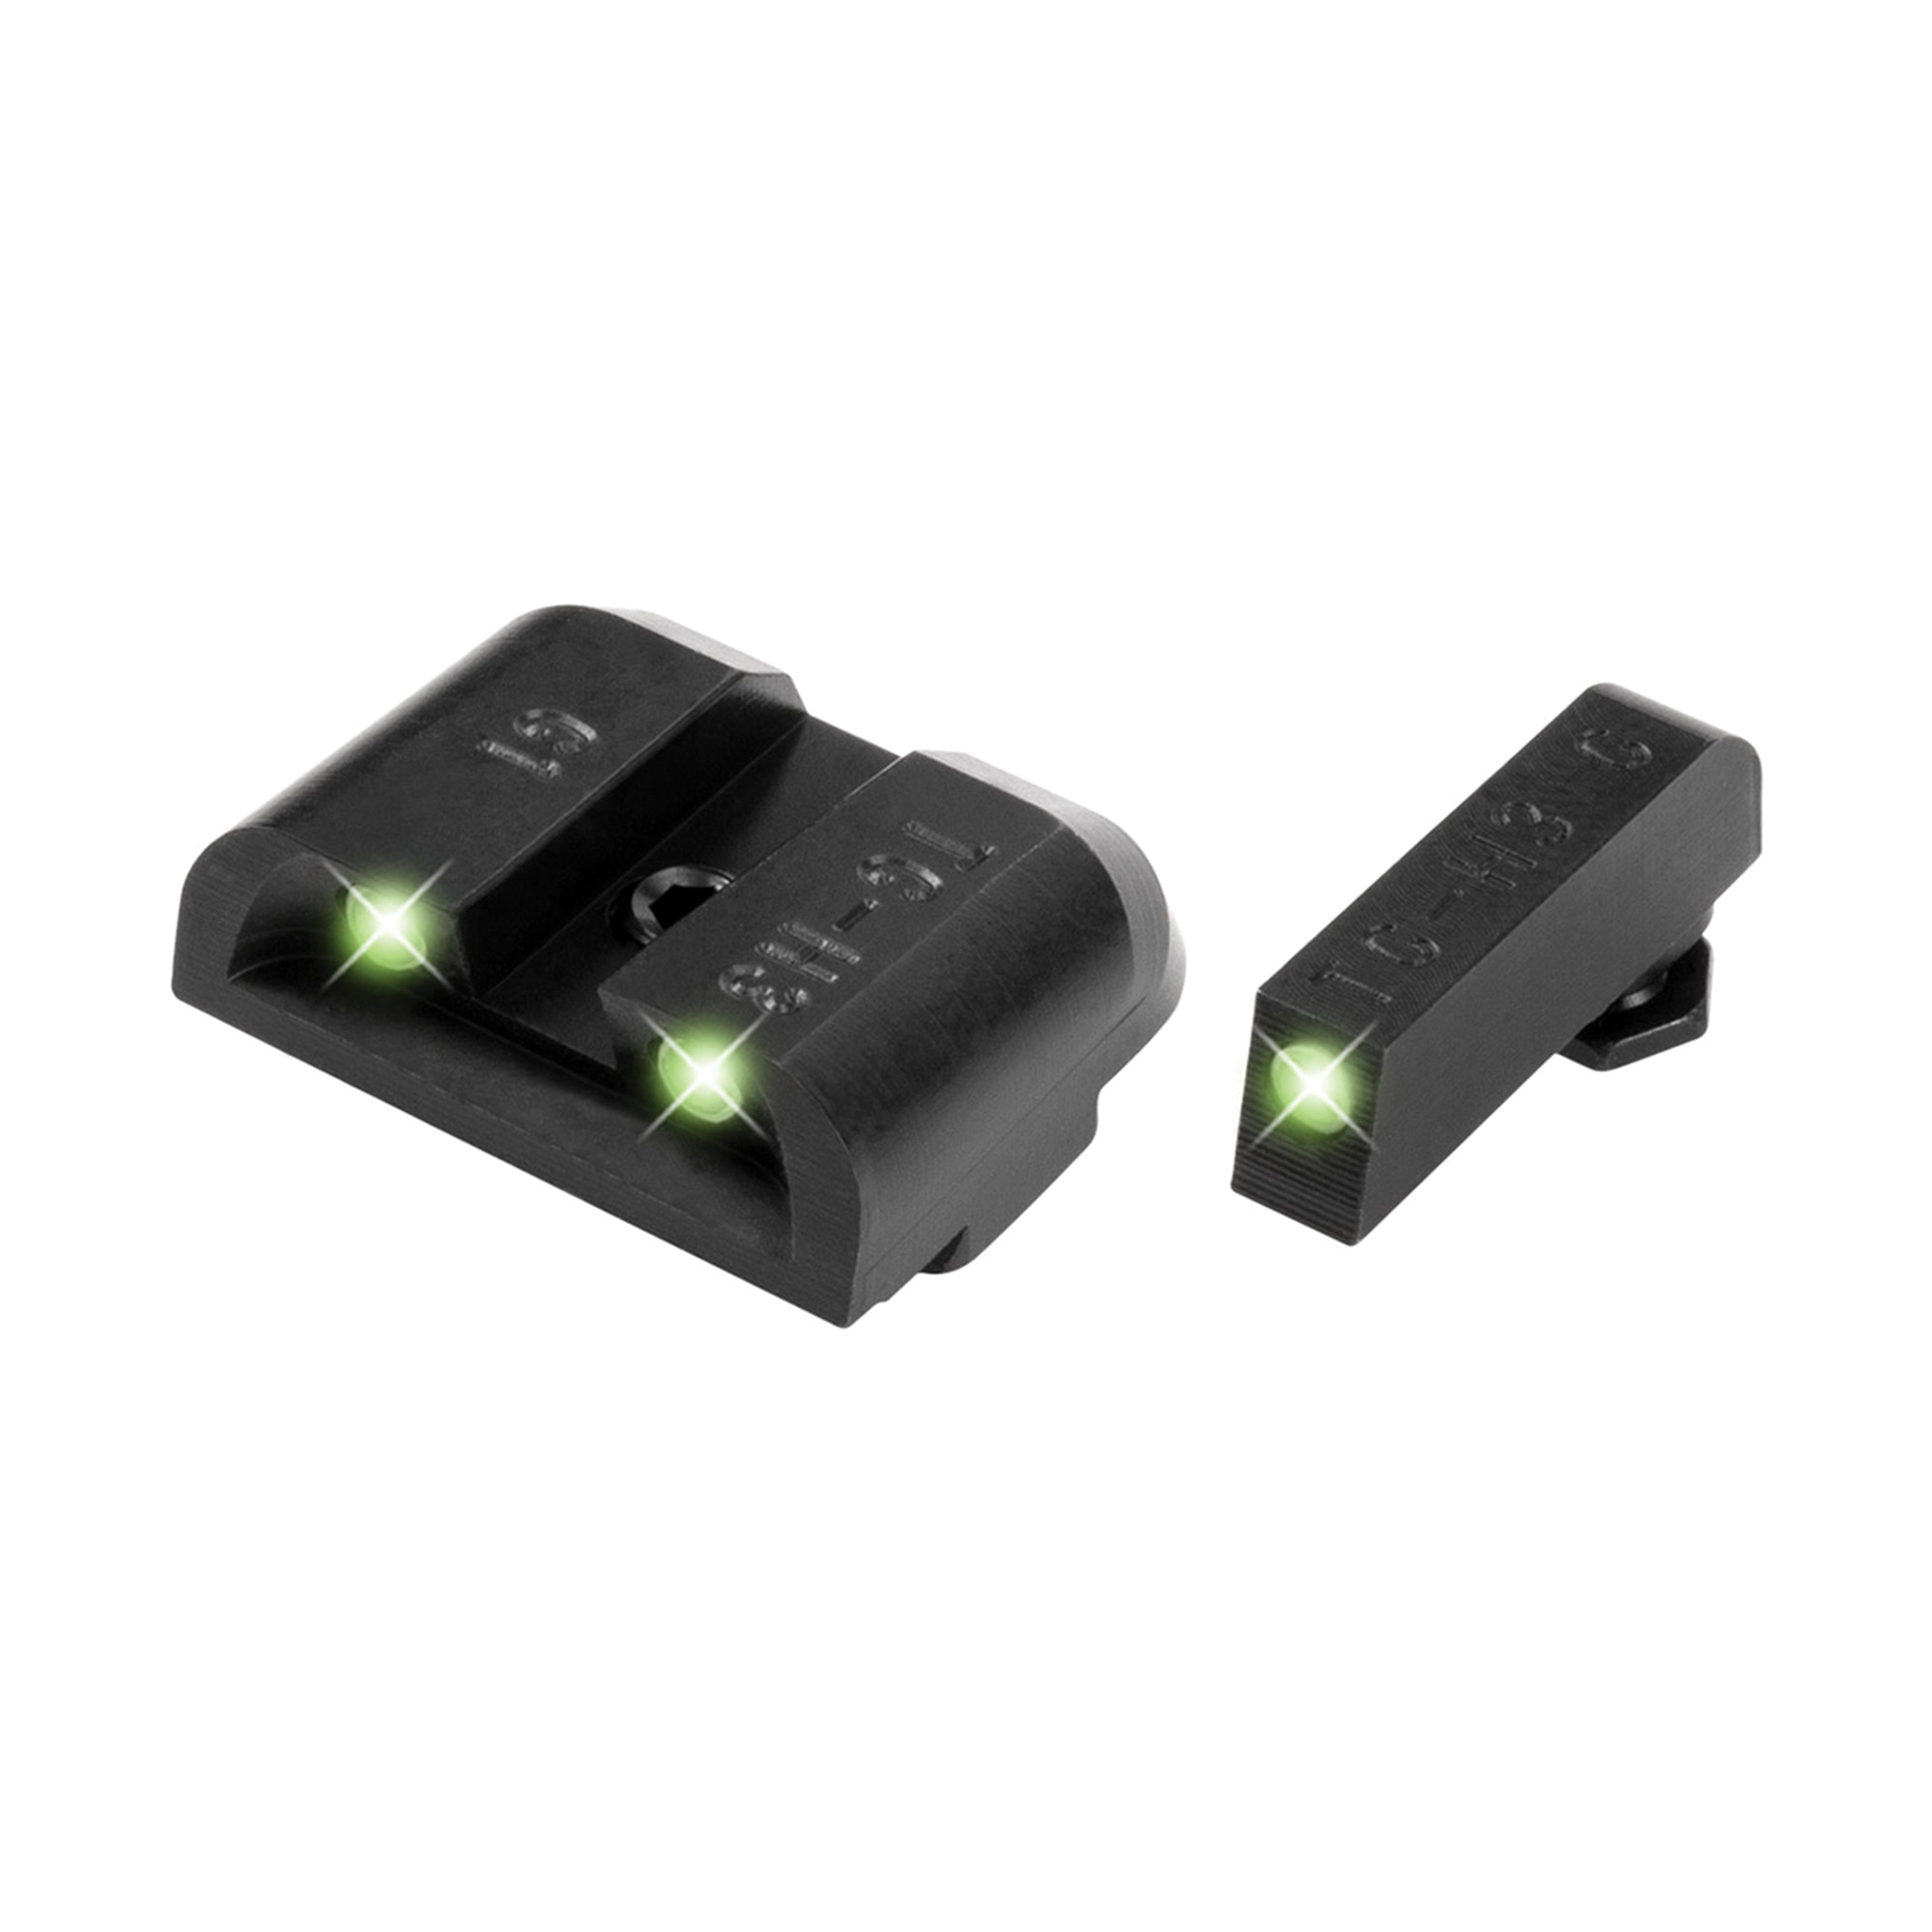 """When the lights go out"""" your sidearm doesn't need to be left in the dark. Tritium night sights transition from standard white dot sights during the daylight"""" to glowing green dots in the dark. Tritium does not need batteries and does not need to be charged with light - it simply glows!"""